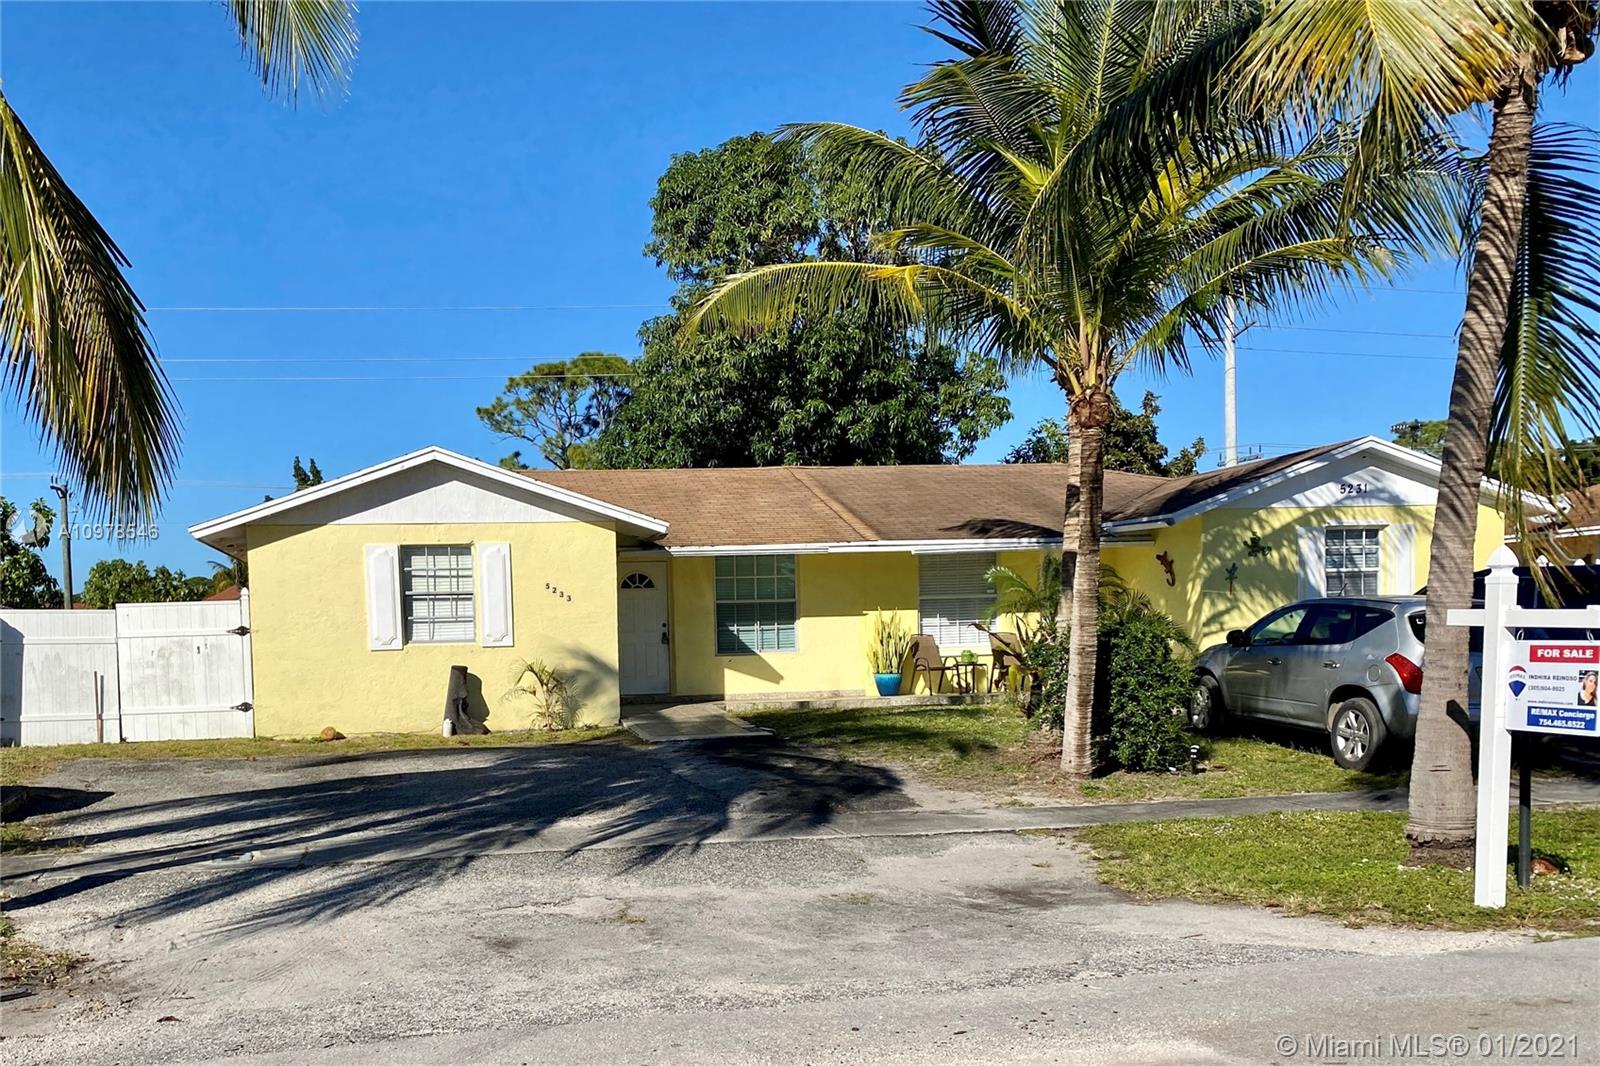 5233 Cannon Way, West Palm Beach, Florida 33415